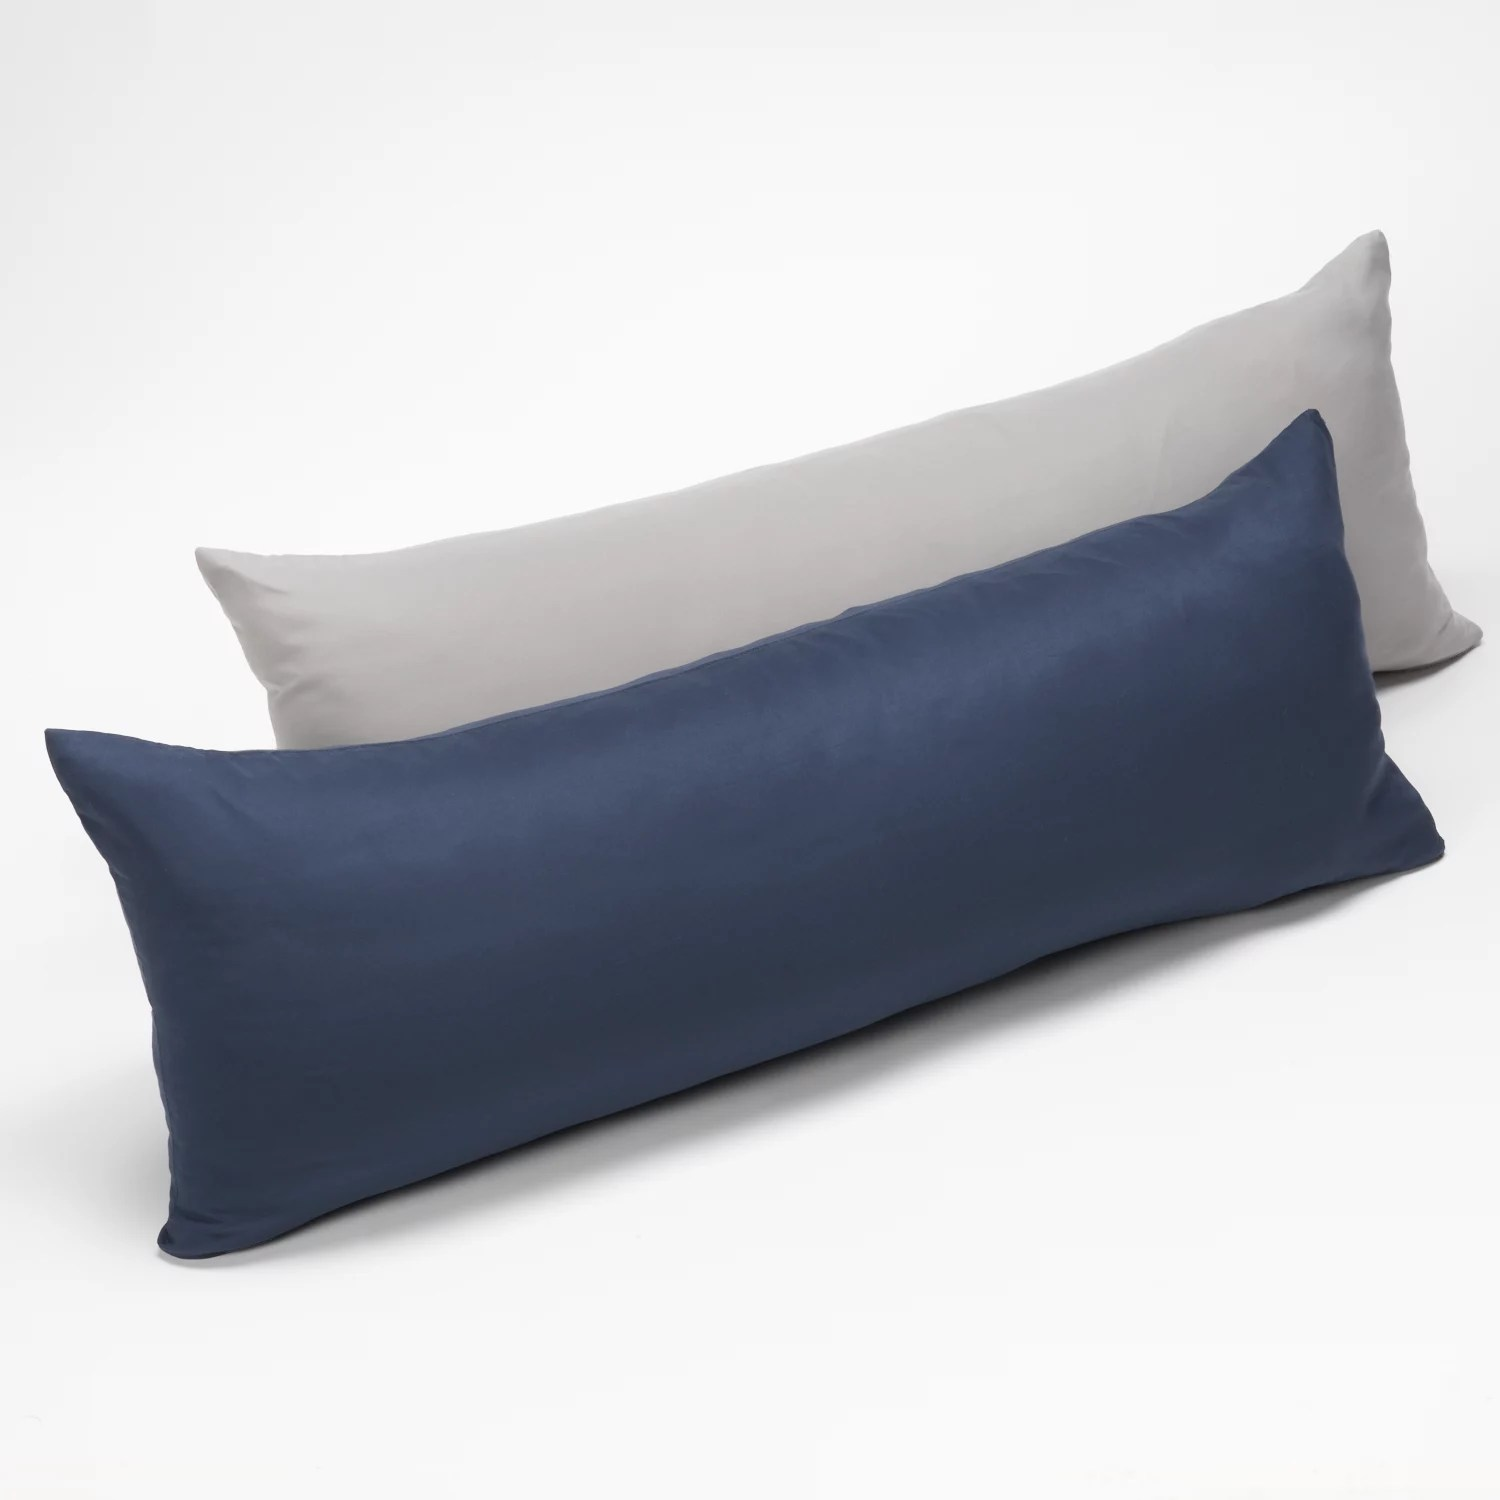 simple by design 2 pk microfiber body pillow covers